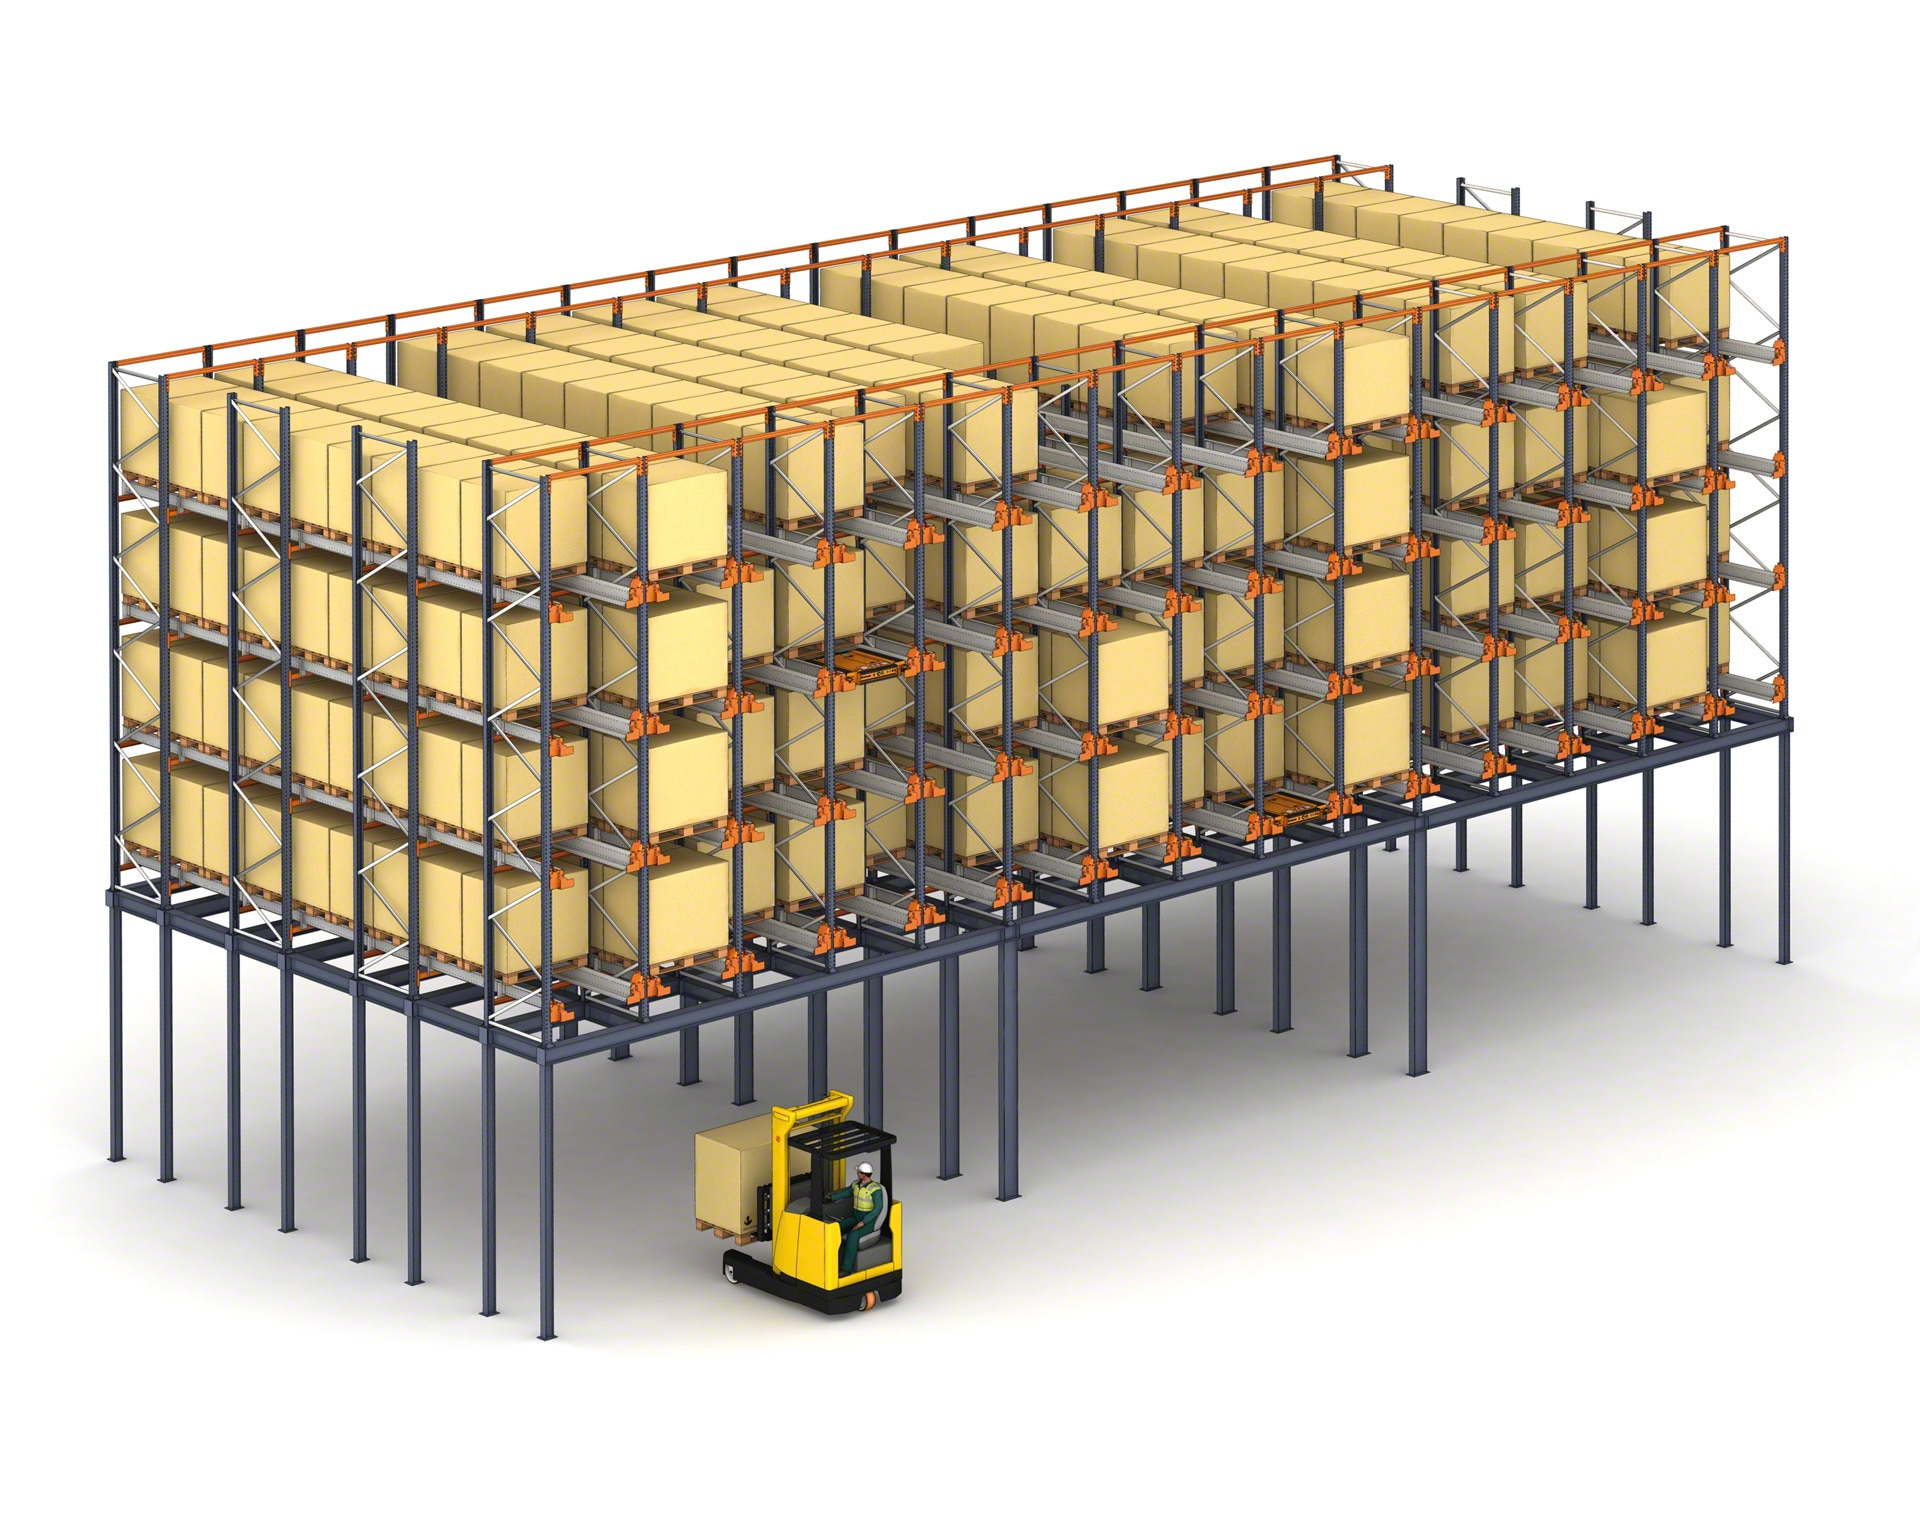 In warehouses with limited space, the Pallet Shuttle system can be installed on a mezzanine floor to maximise the surface